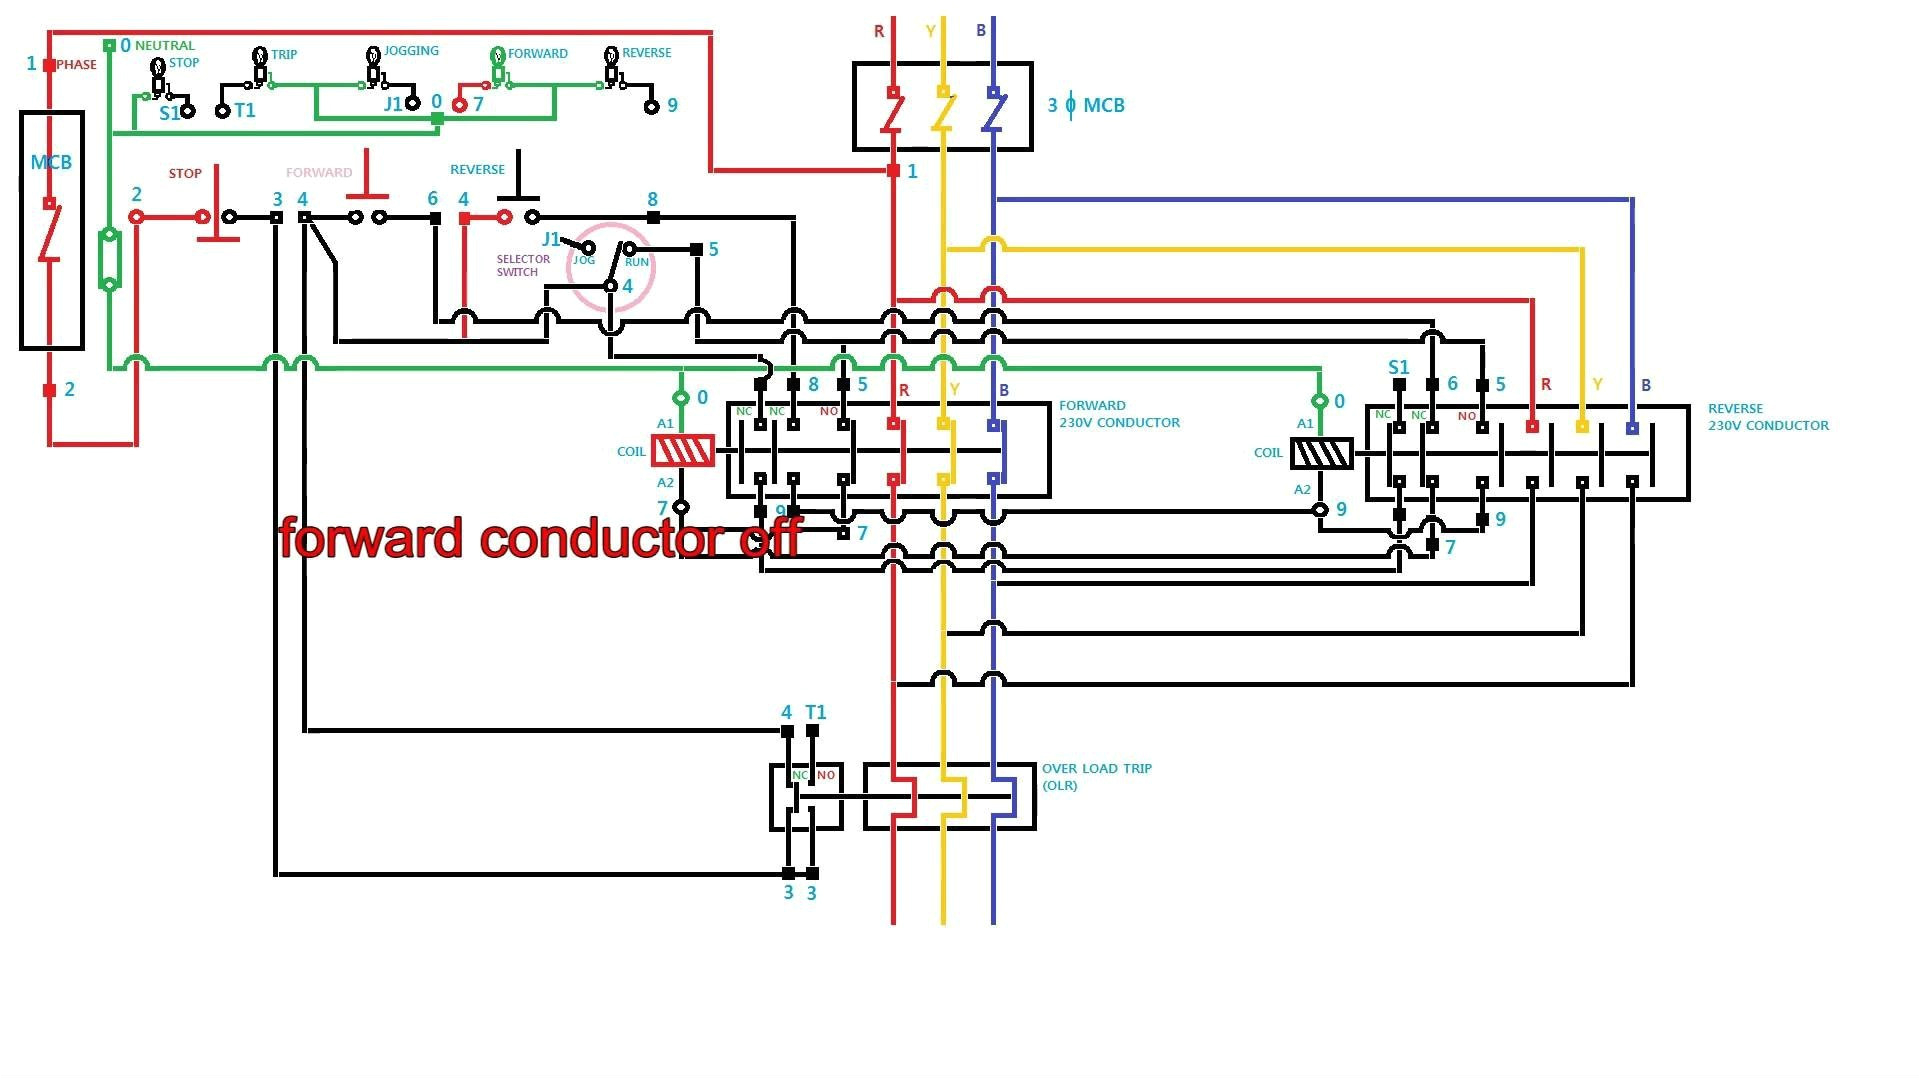 single phase motor wiring diagram forward reverse best of single phase motor forward reverse wiring diagram pdf unique wiring